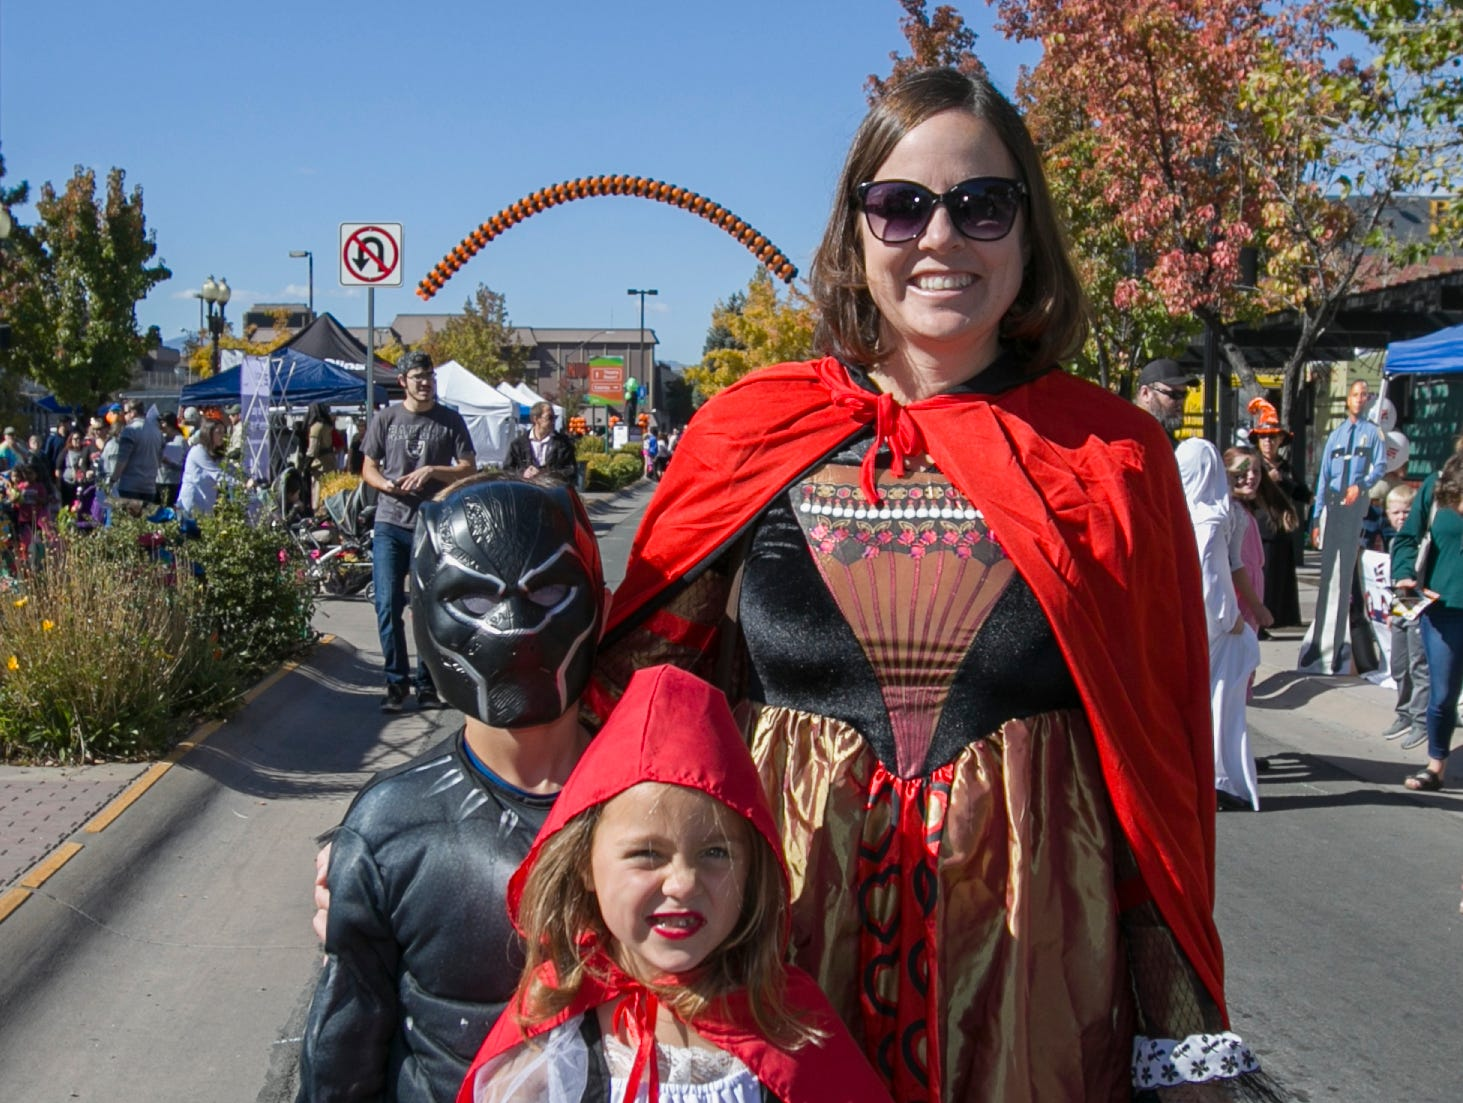 The Clore family during Pumpkin Palooza on Sunday Oct. 21, 2018 in Sparks, Nevada.